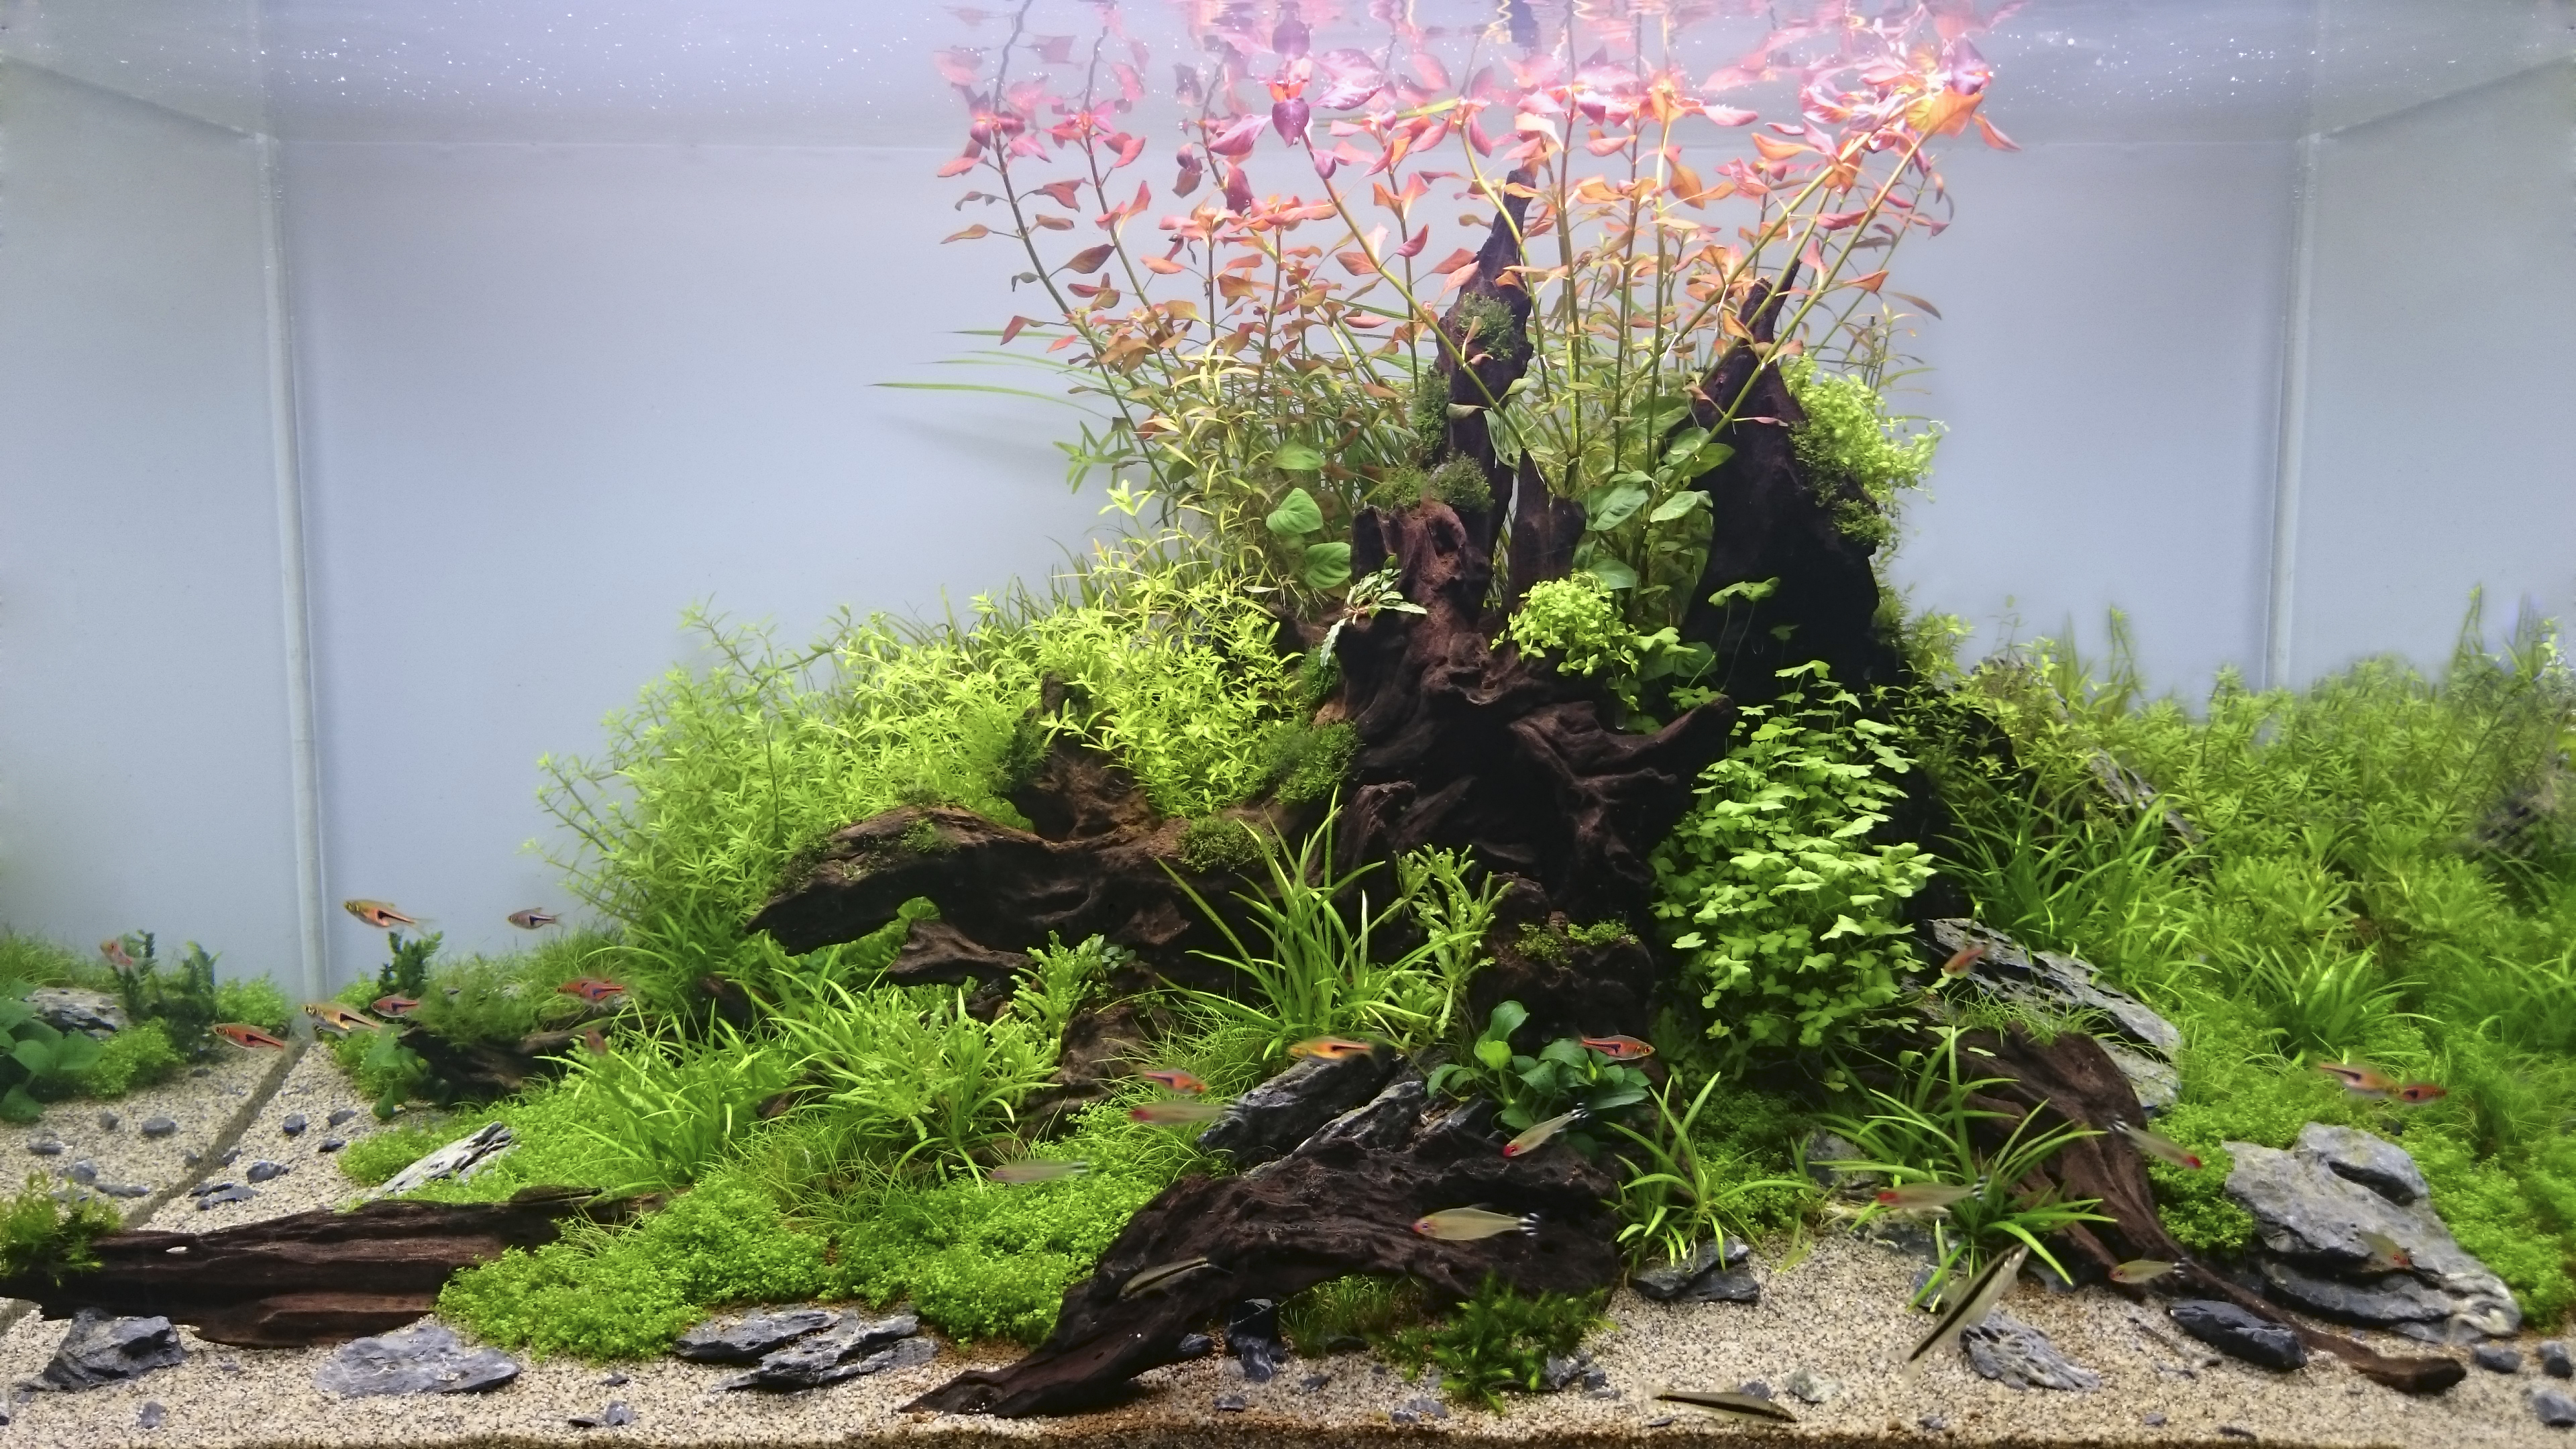 The Different Styles Of Aquascaping Ukasc Co Uk